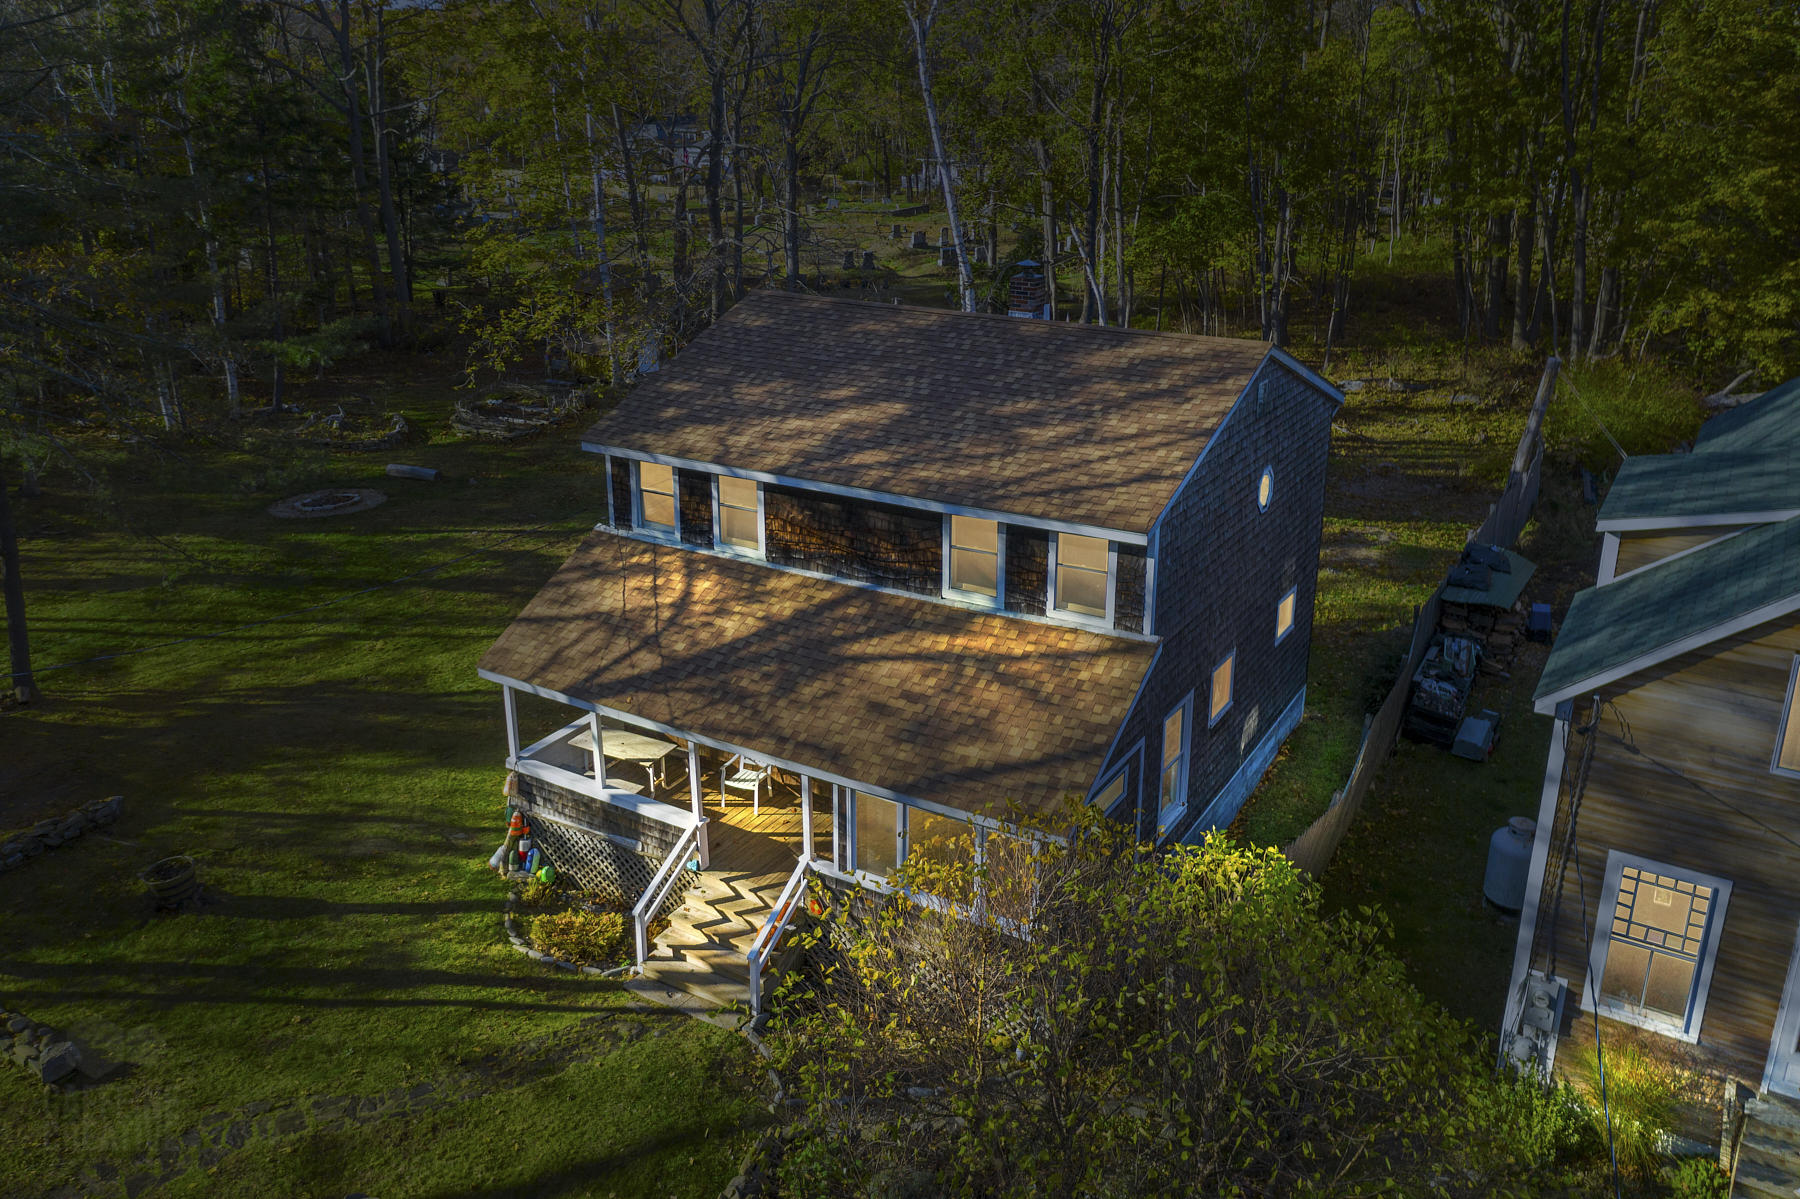 Main image for MLS listing 1475843